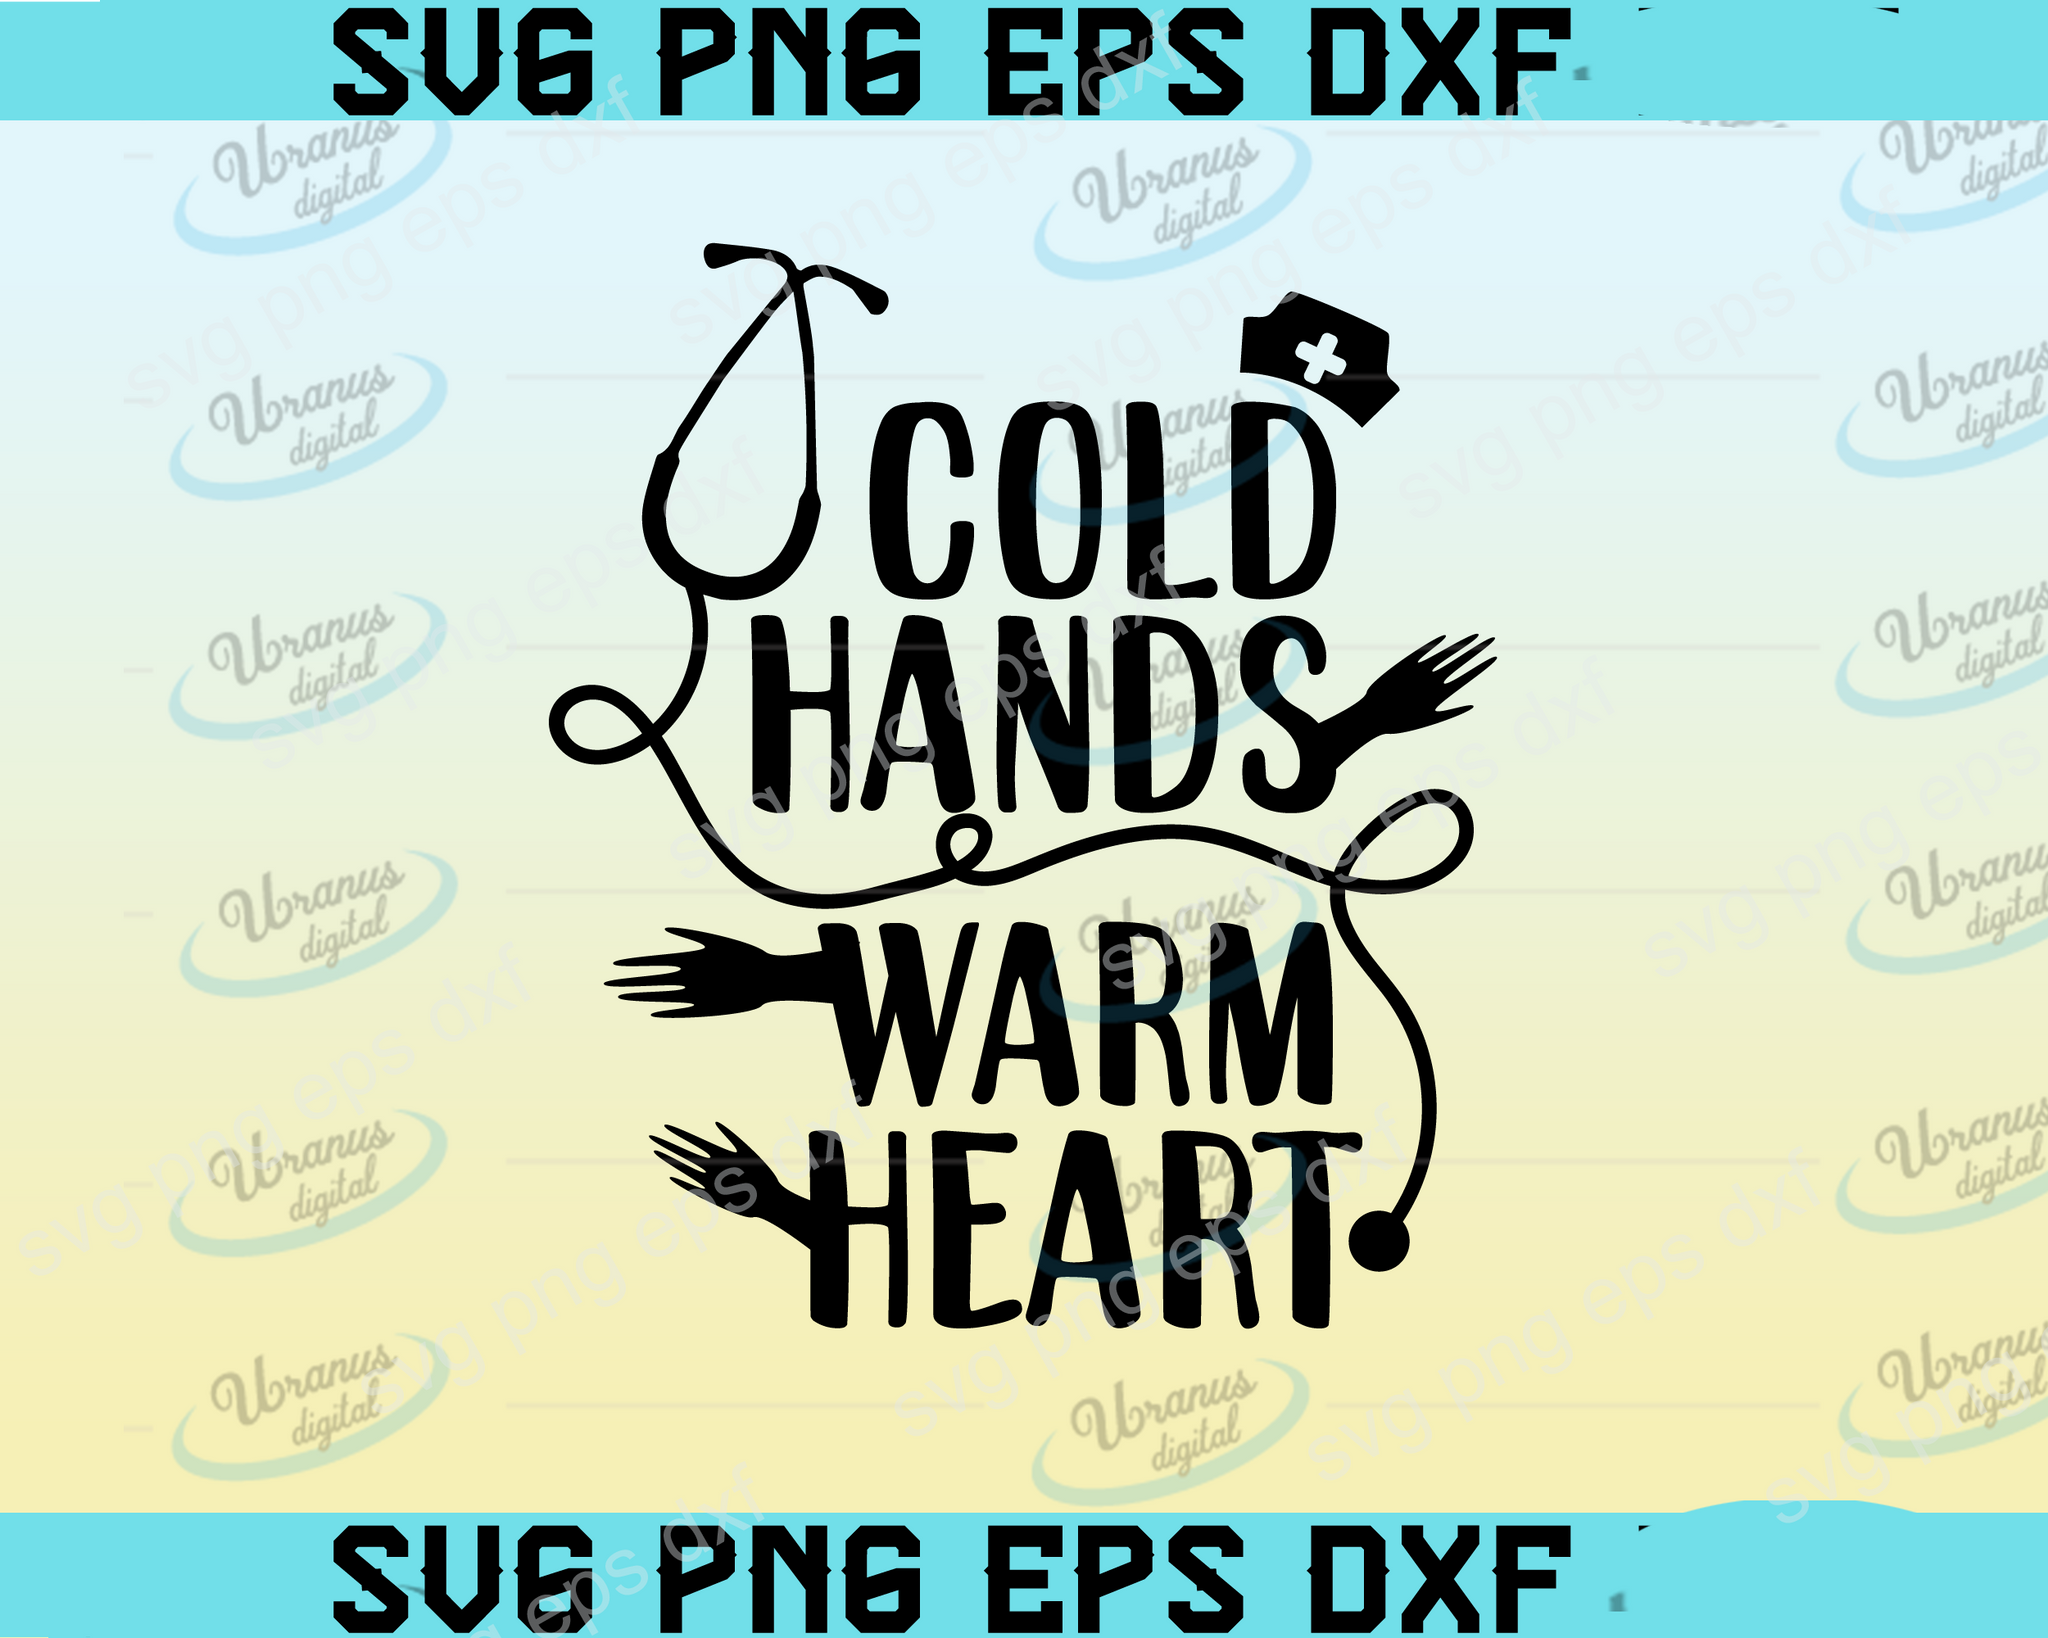 Cold hands warm heart SVG,SVG Files For Silhouette, Files For Cricut, SVG, DXF, EPS, PNG Instant Download